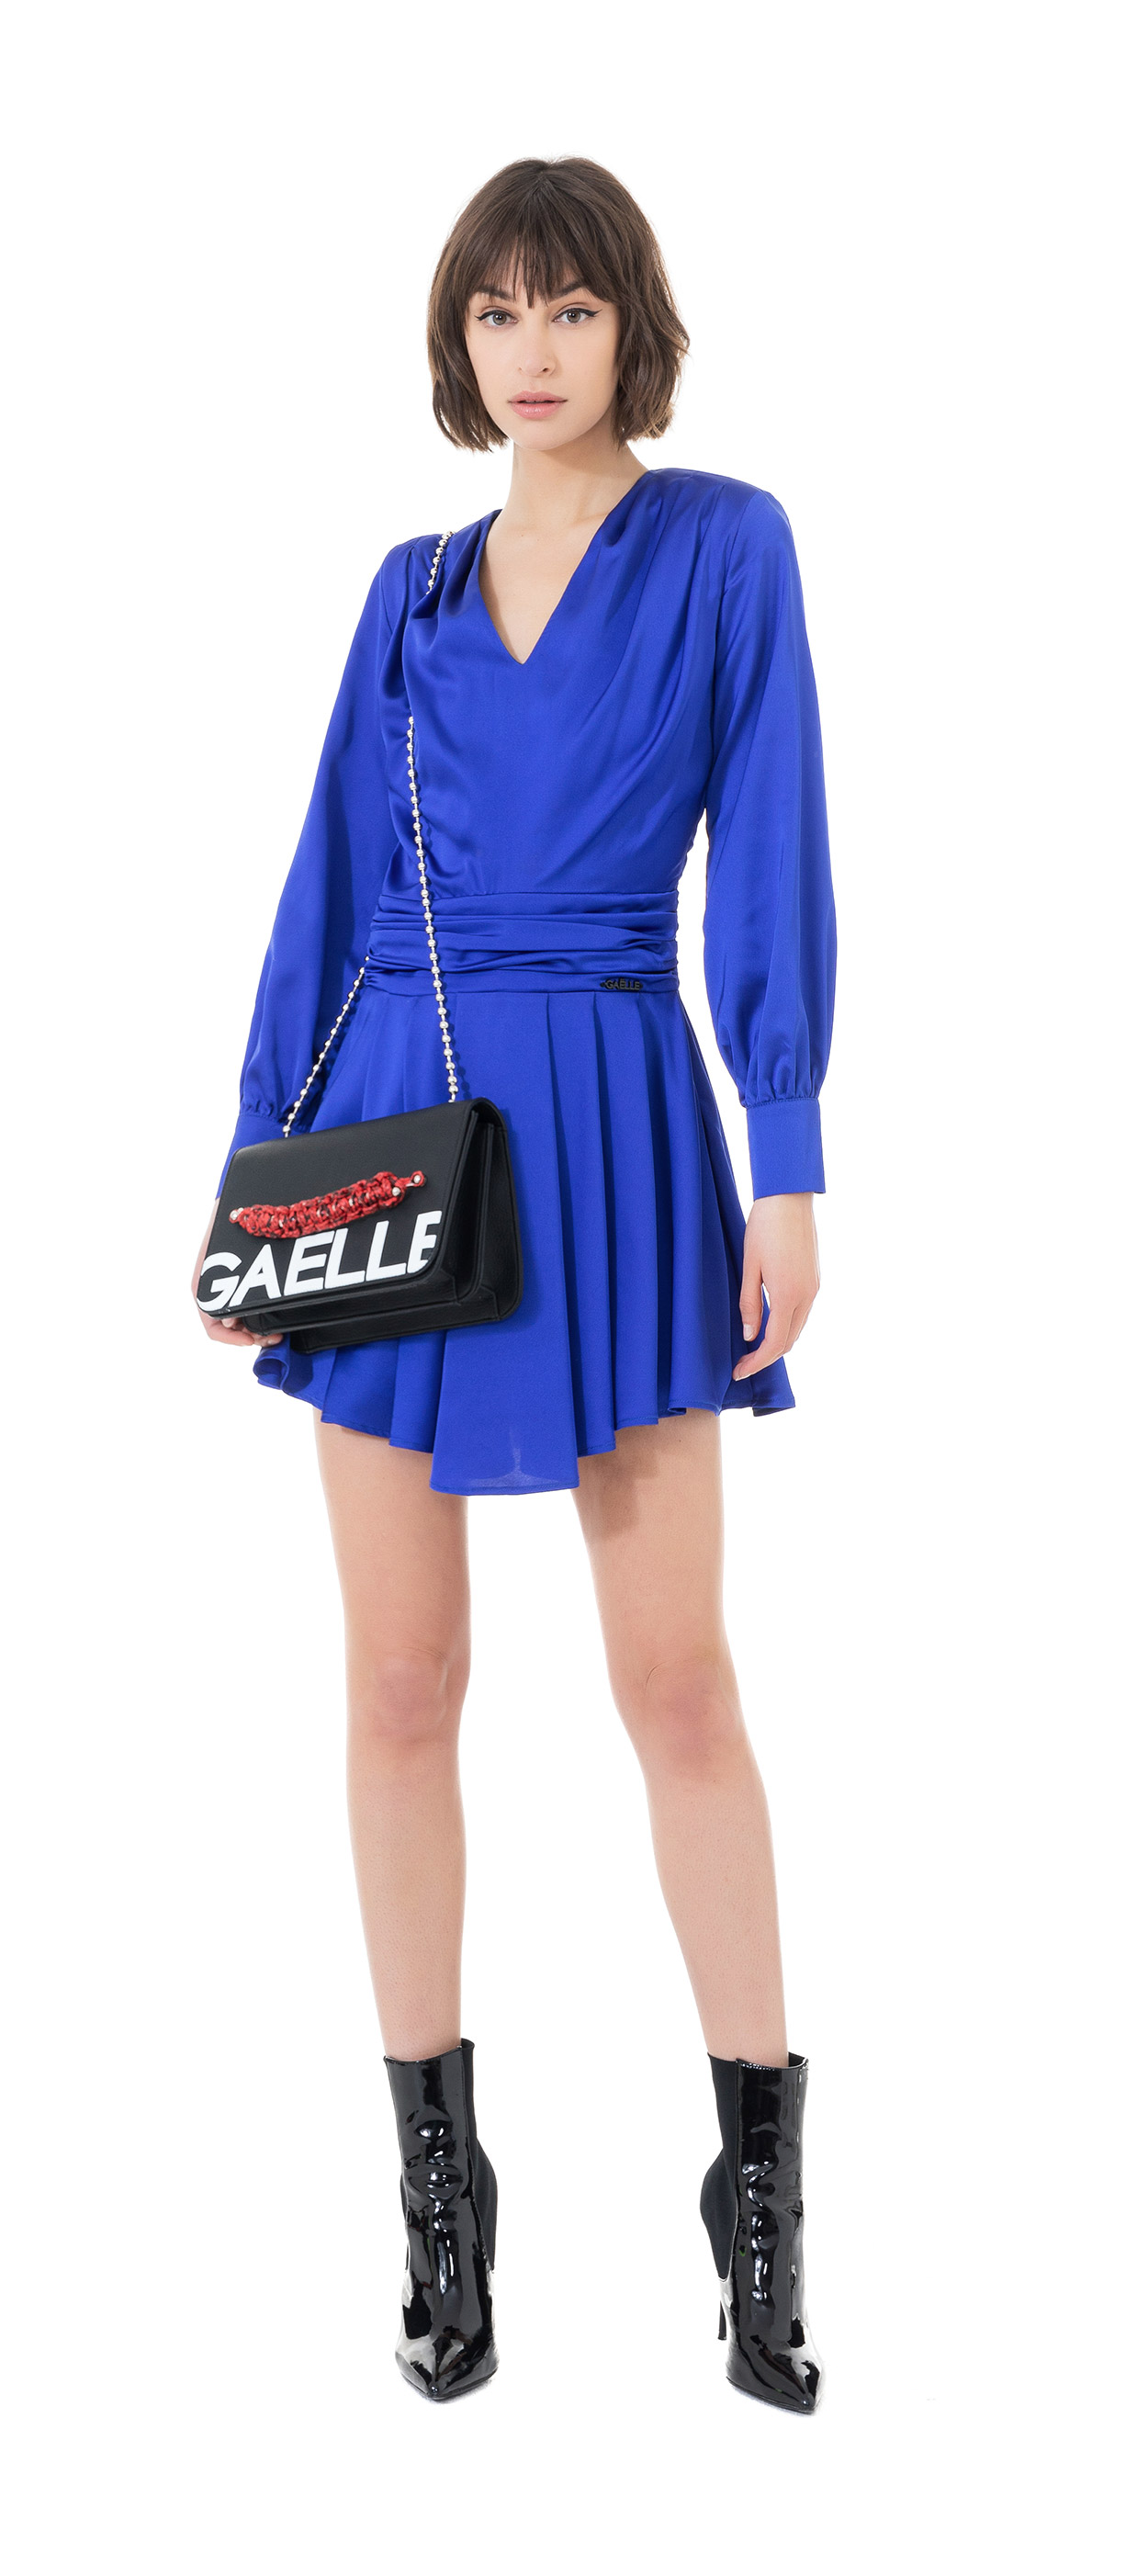 DRESS - GBD4607 - GAELLE PARIS